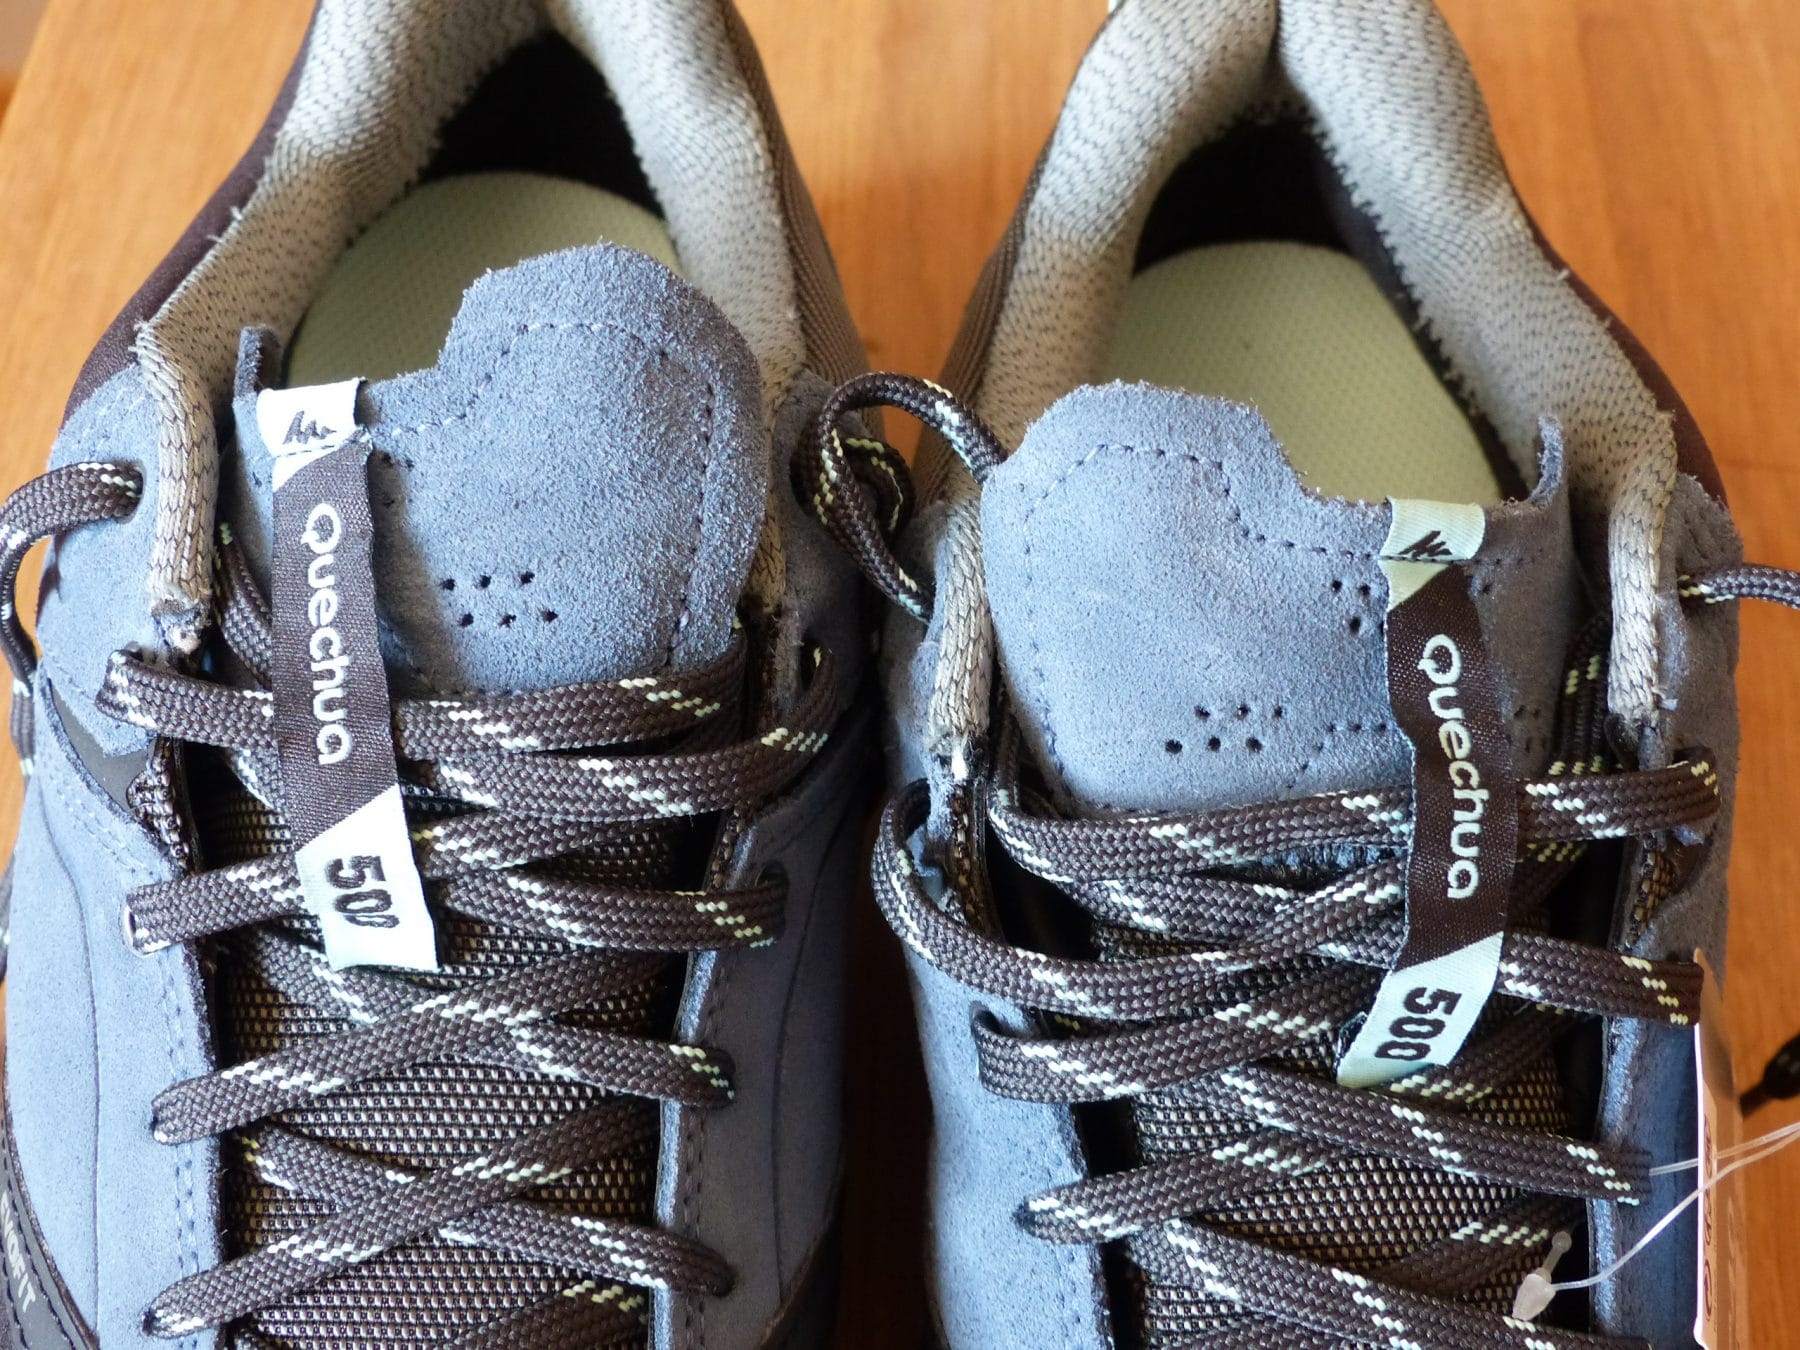 cheapest price best wholesaler first look Test chaussures Quechua MH500 femme, confortables, et ...